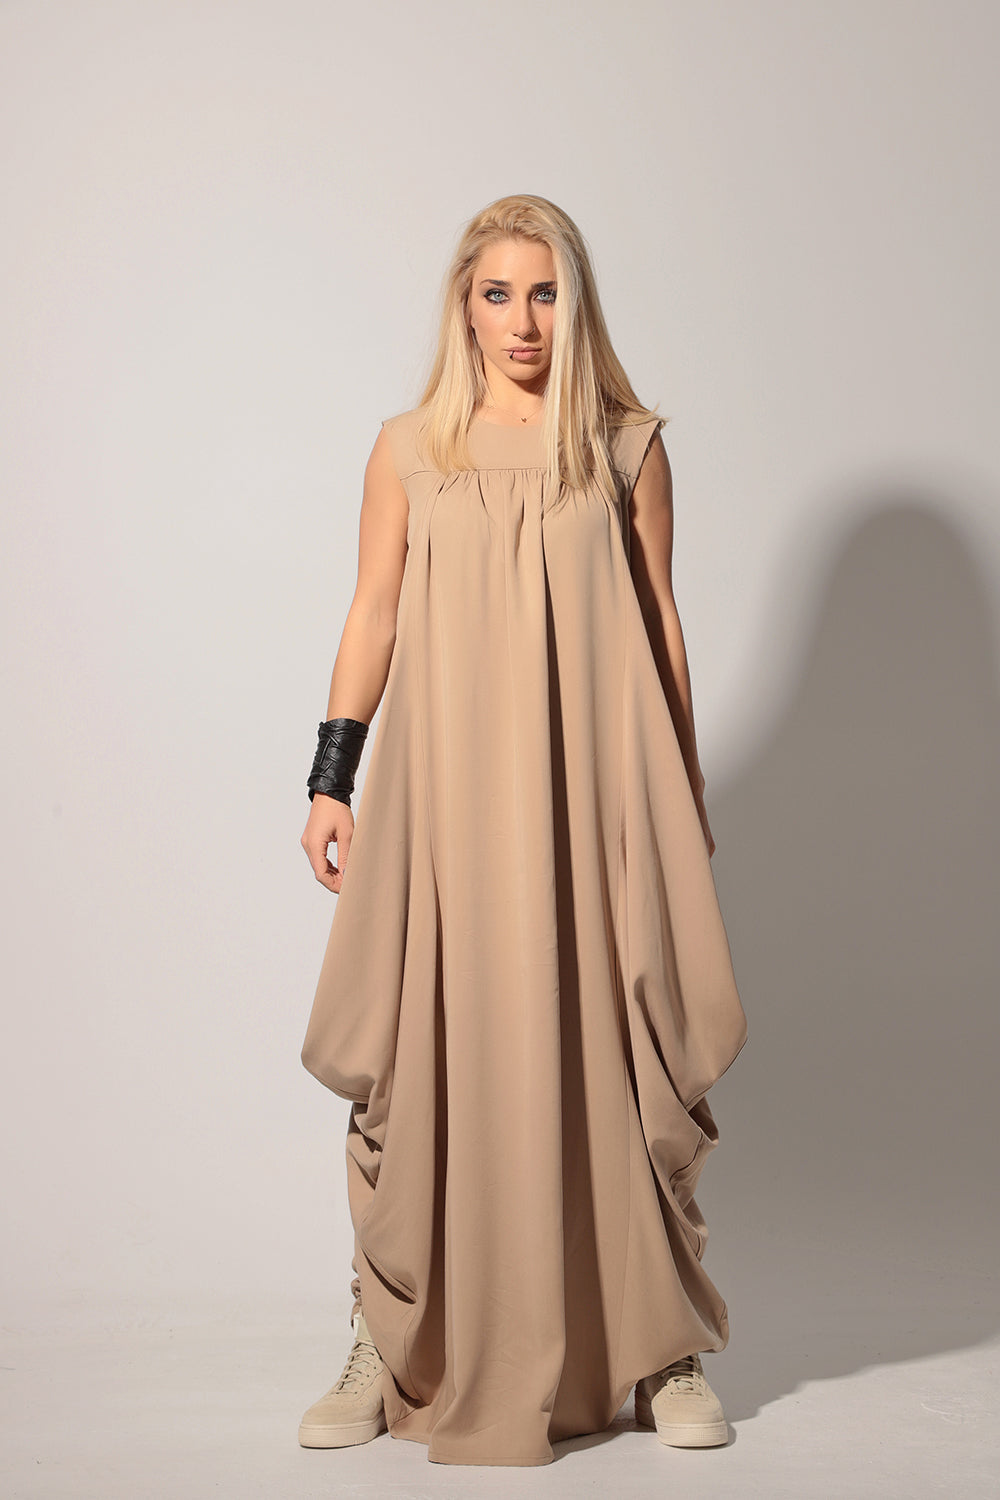 Plus Size Sleeveless Floor Length Maxi Dress